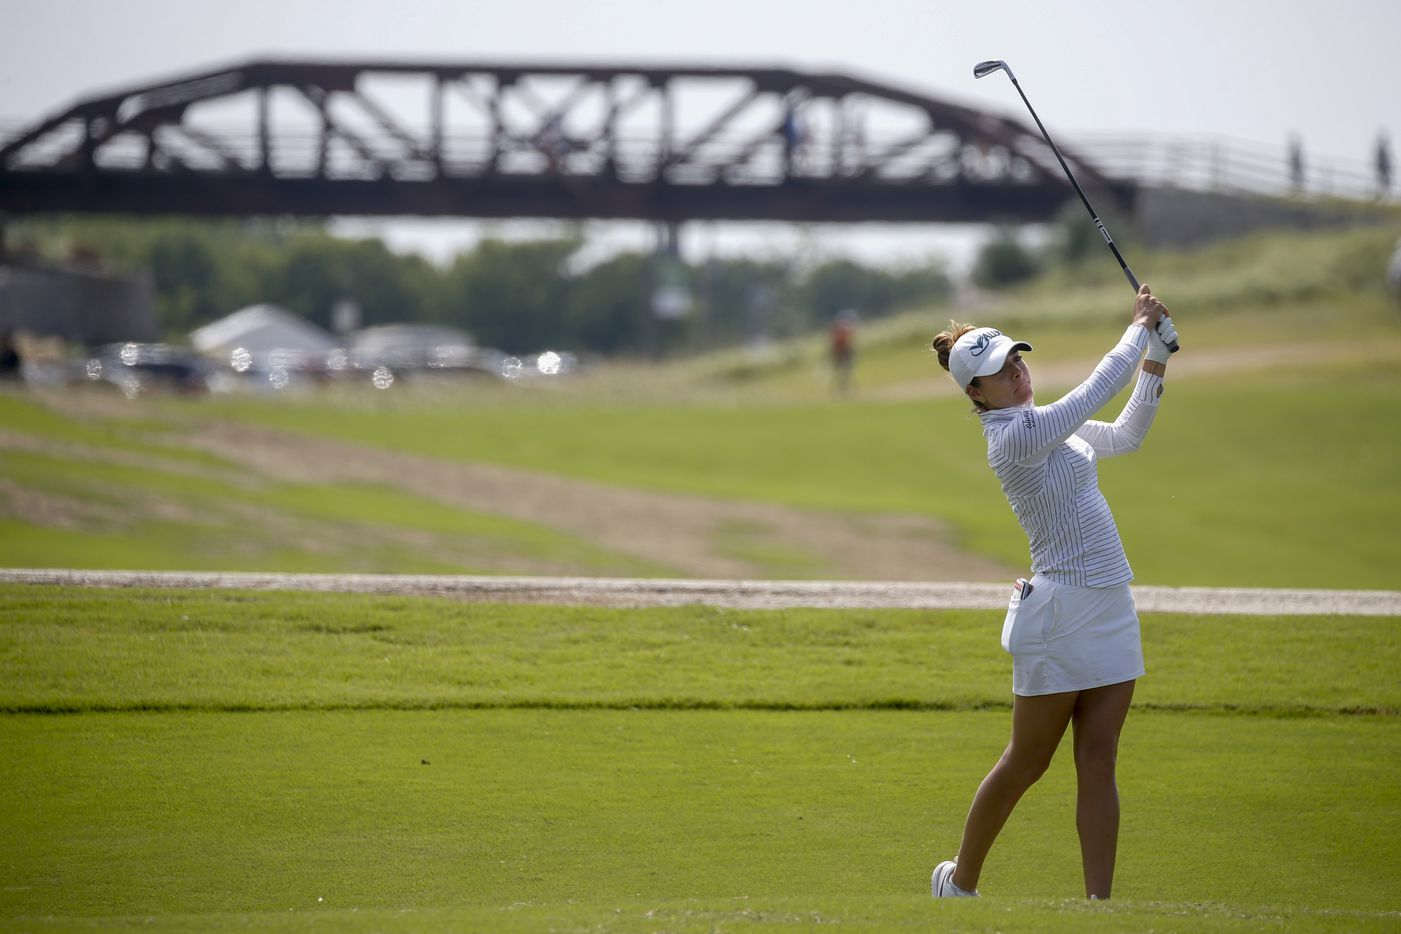 Professional golfer Gaby Lopez hits a shot on the No. 2 fairway during the third round of the LPGA VOA Classic on Saturday, July 3, 2021, in The Colony, Texas. (Elias Valverde II/The Dallas Morning News)